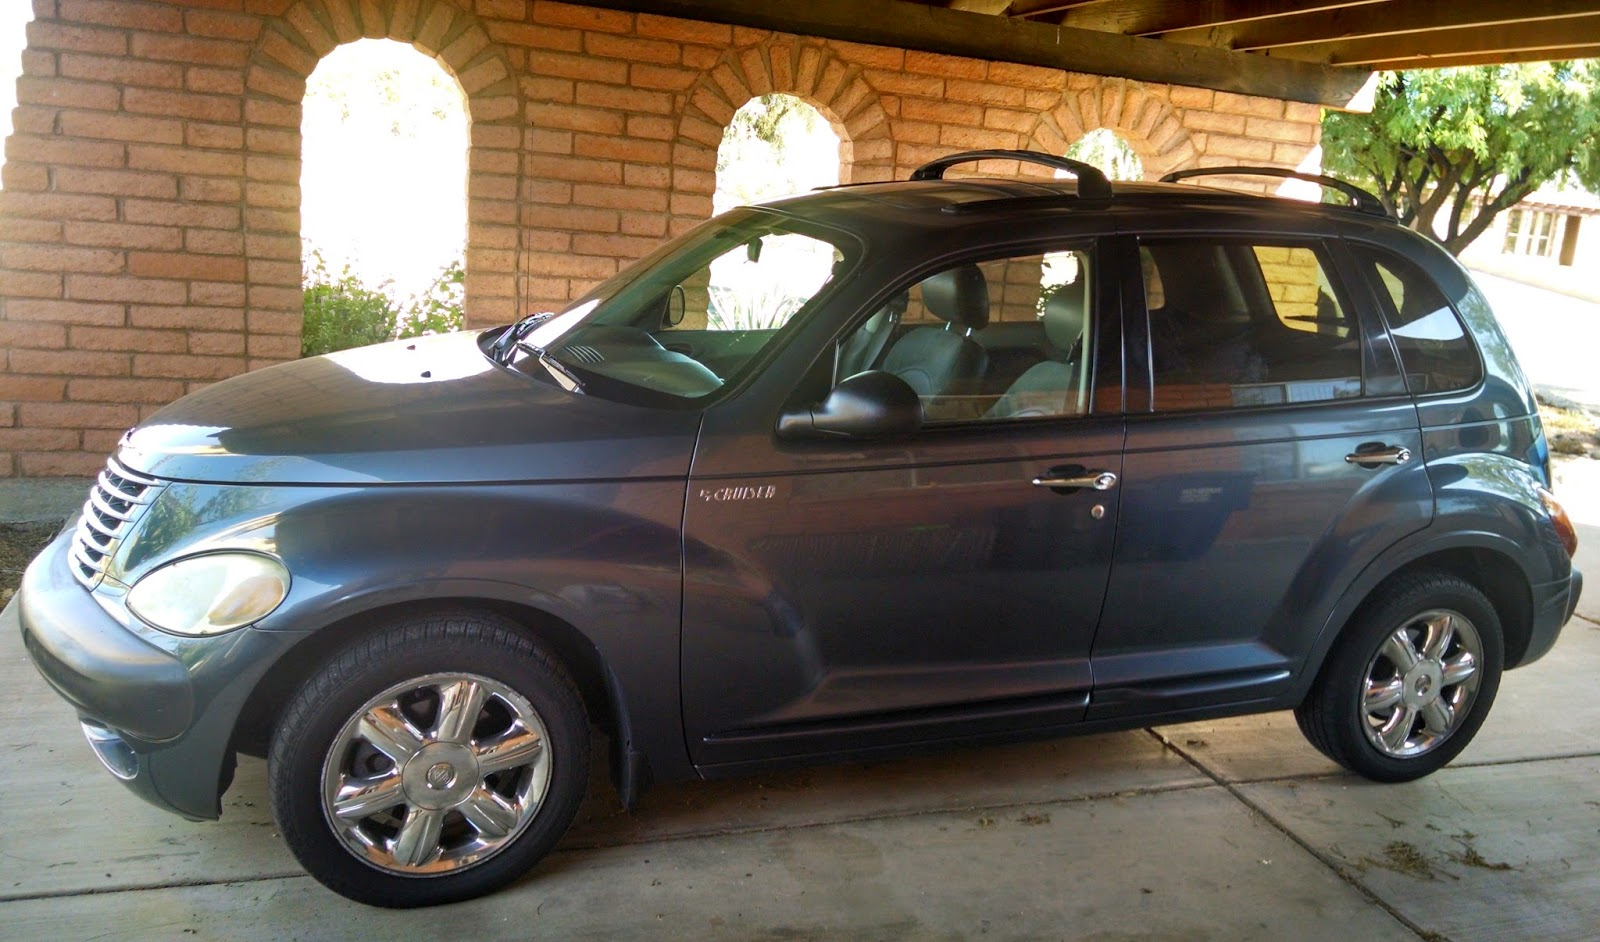 I Told Him Would Let Know By The End Of Day After Researching Car And Blue Book Value Decided To Go For It Pt Cruiser S